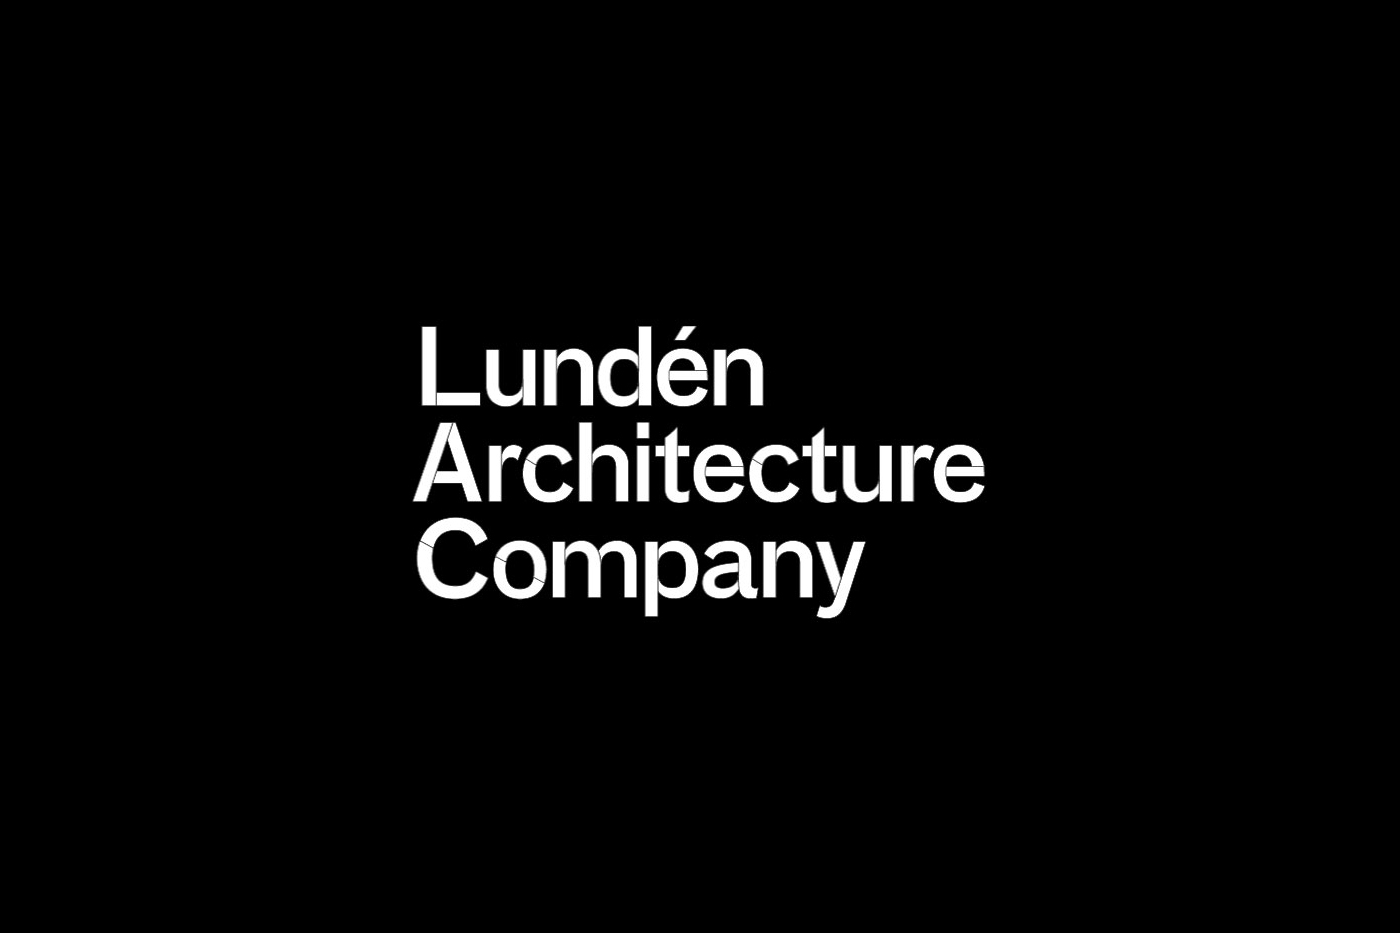 Logotype by Finnish design studio Tsto for Helsinki-based Lundén Architecture Company